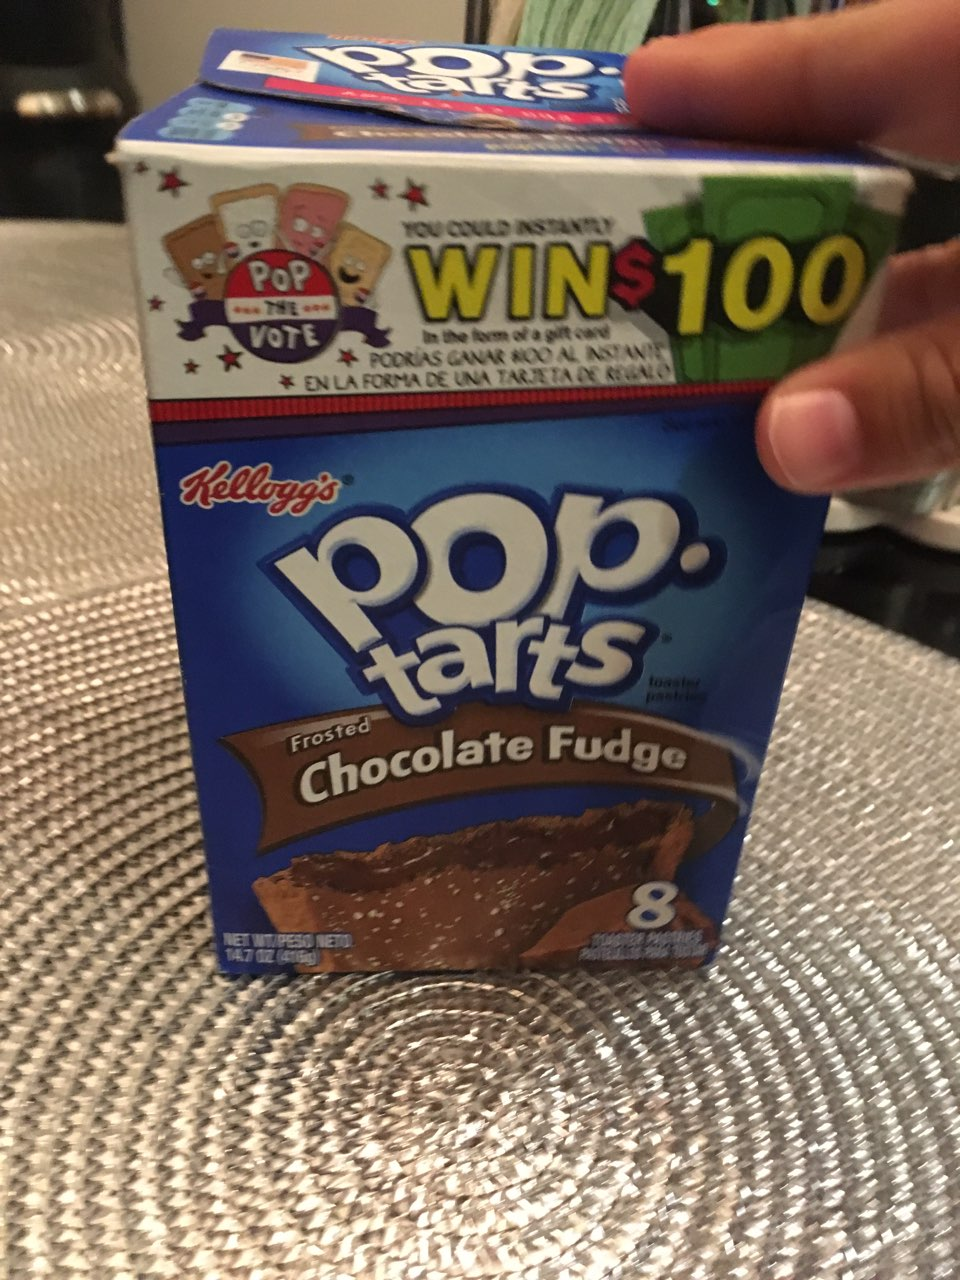 Frosted Chocolate Fudge Pop Tarts Ingredients